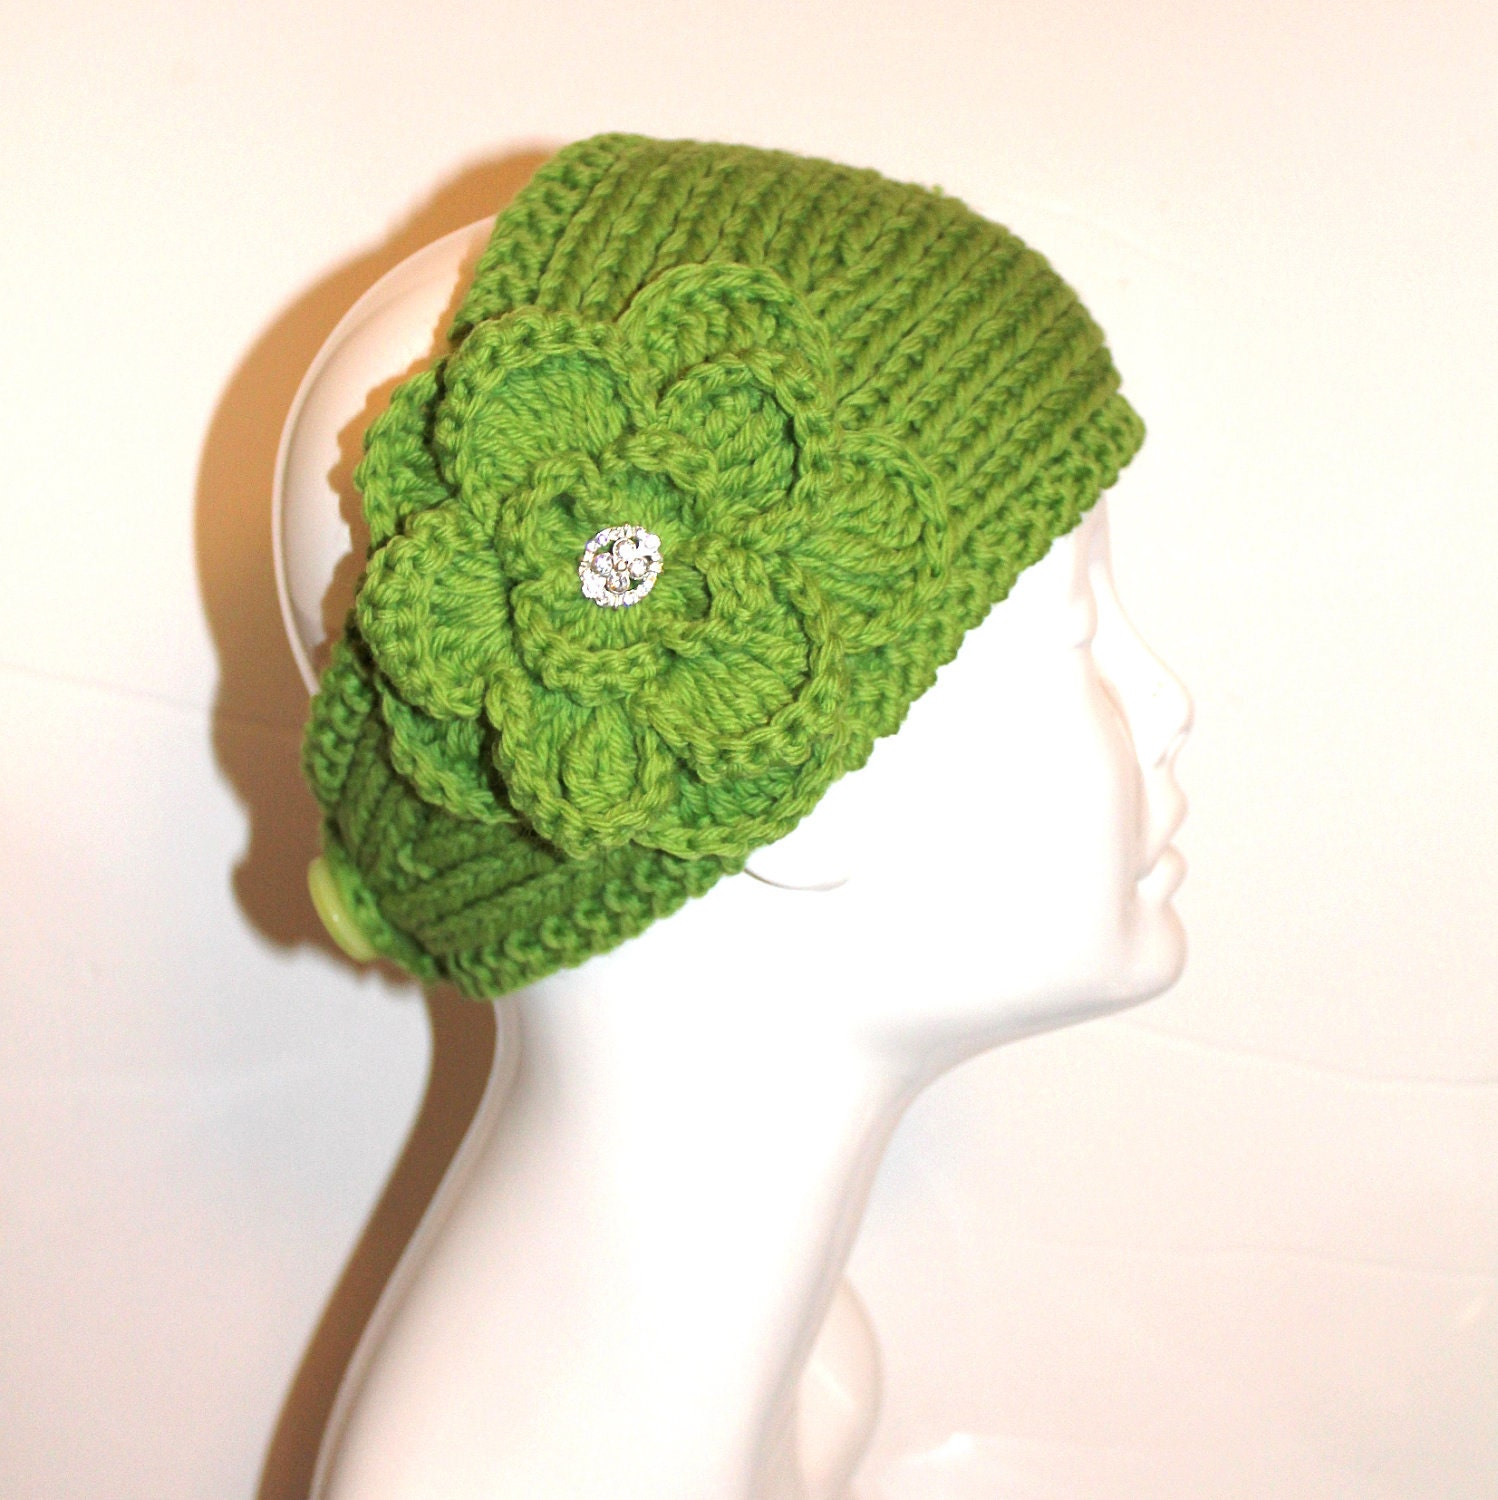 Knit Headband Pattern With Crochet Flower : PATTERN Knitting Pattern Headband with Crochet by ...